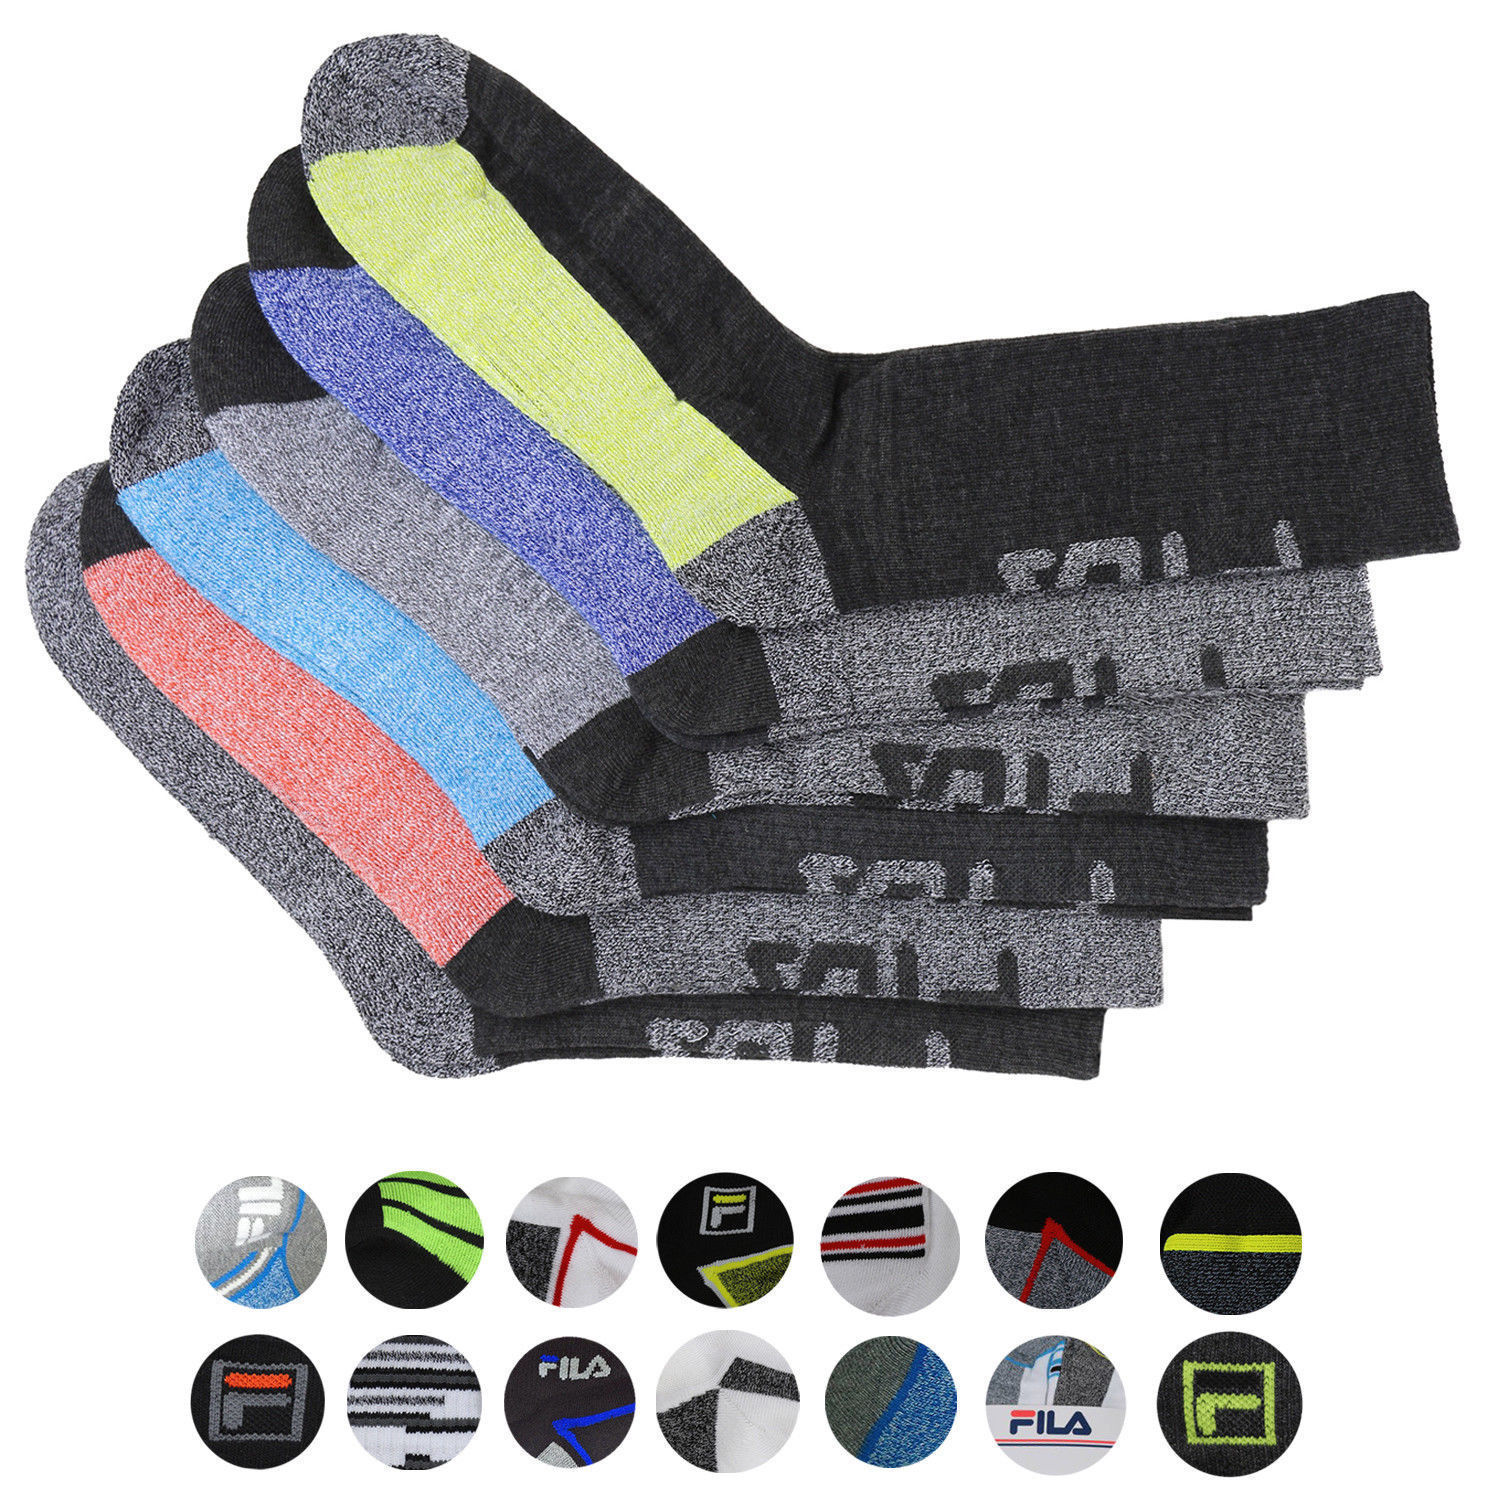 FILA Men's 6 Pack Classic Sport Athletic Gym Moisture Control Absorb Dry Socks